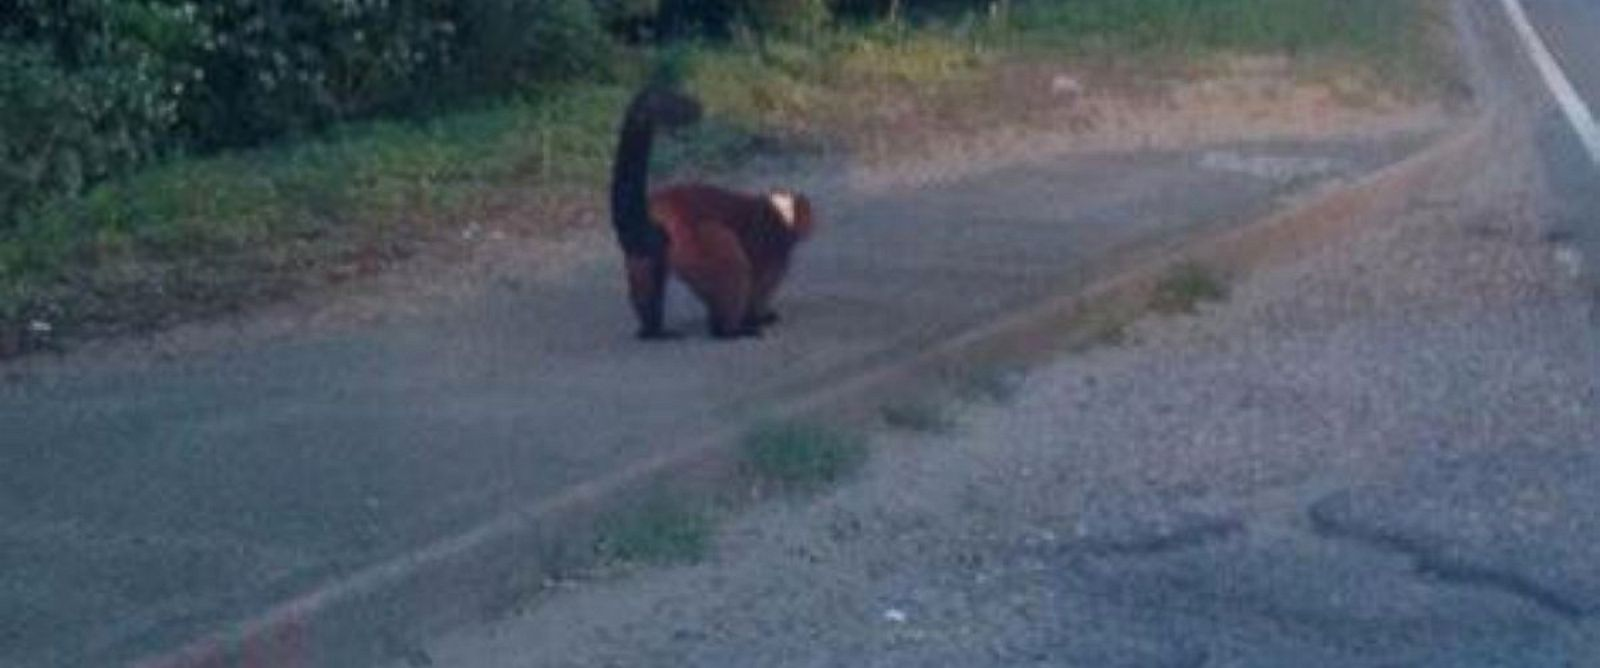 PHOTO: A lemur is seen on the side of the road in the United Kingdom in this undated photo posted to Twitter by Jonathan Hunt.